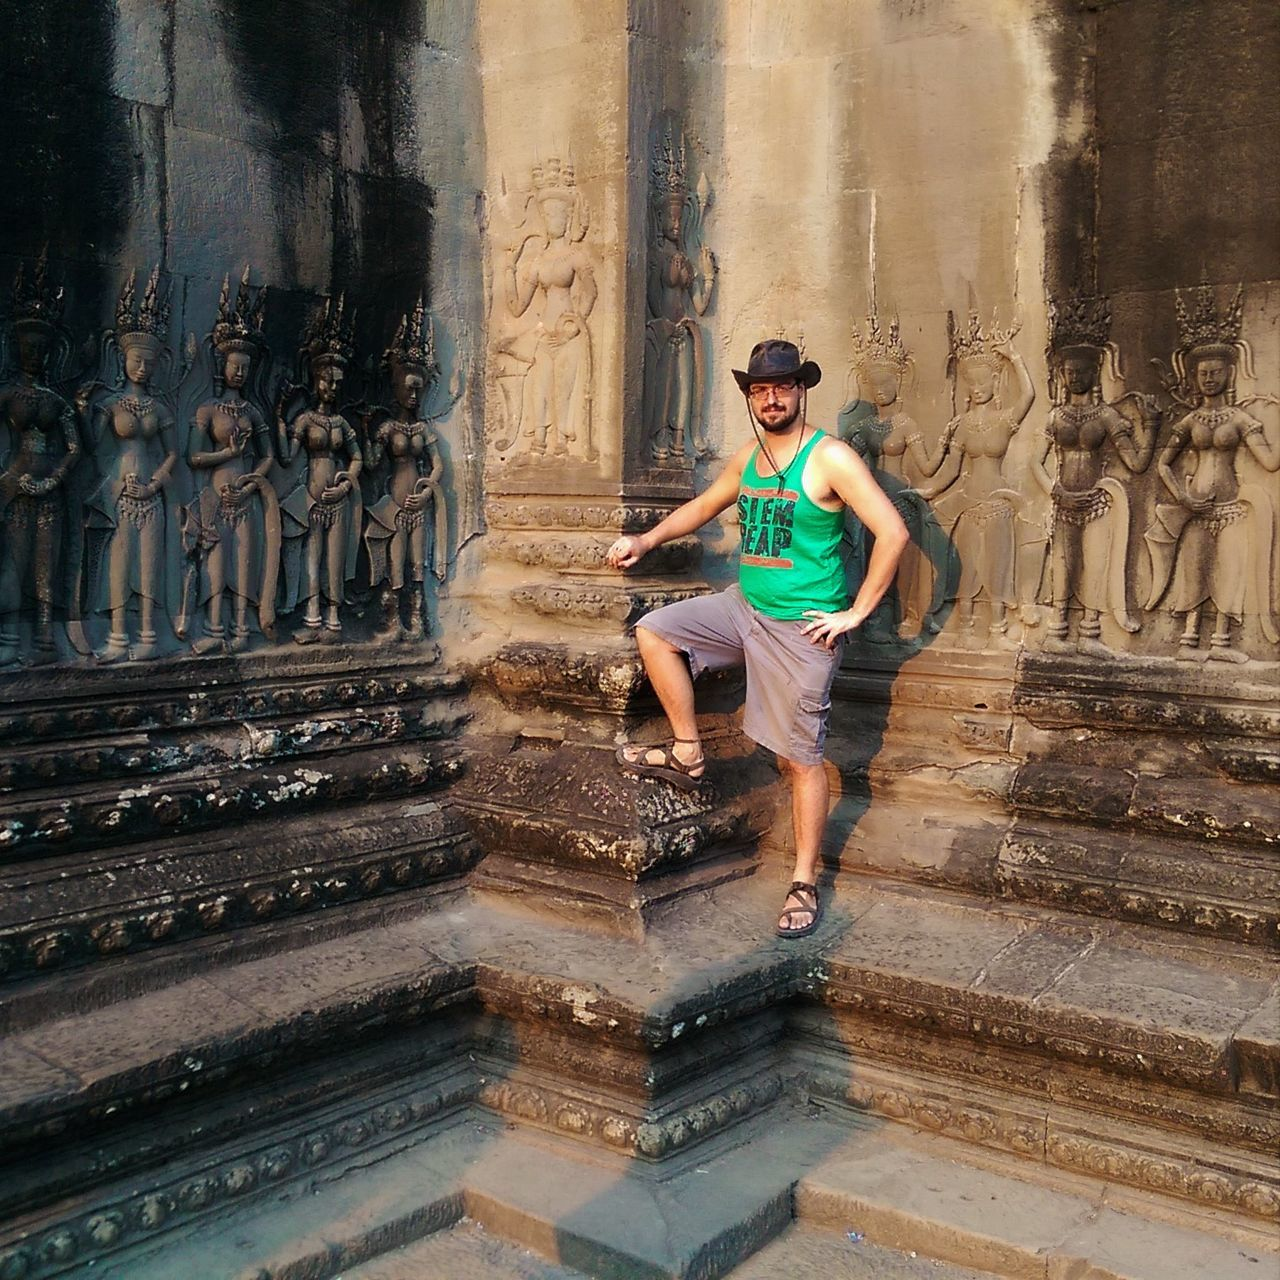 Angkor Wat Antient Cambodia Casual Clothing Chaco Culture Day Fun Leisure Activity Lifestyles Temple Tourism